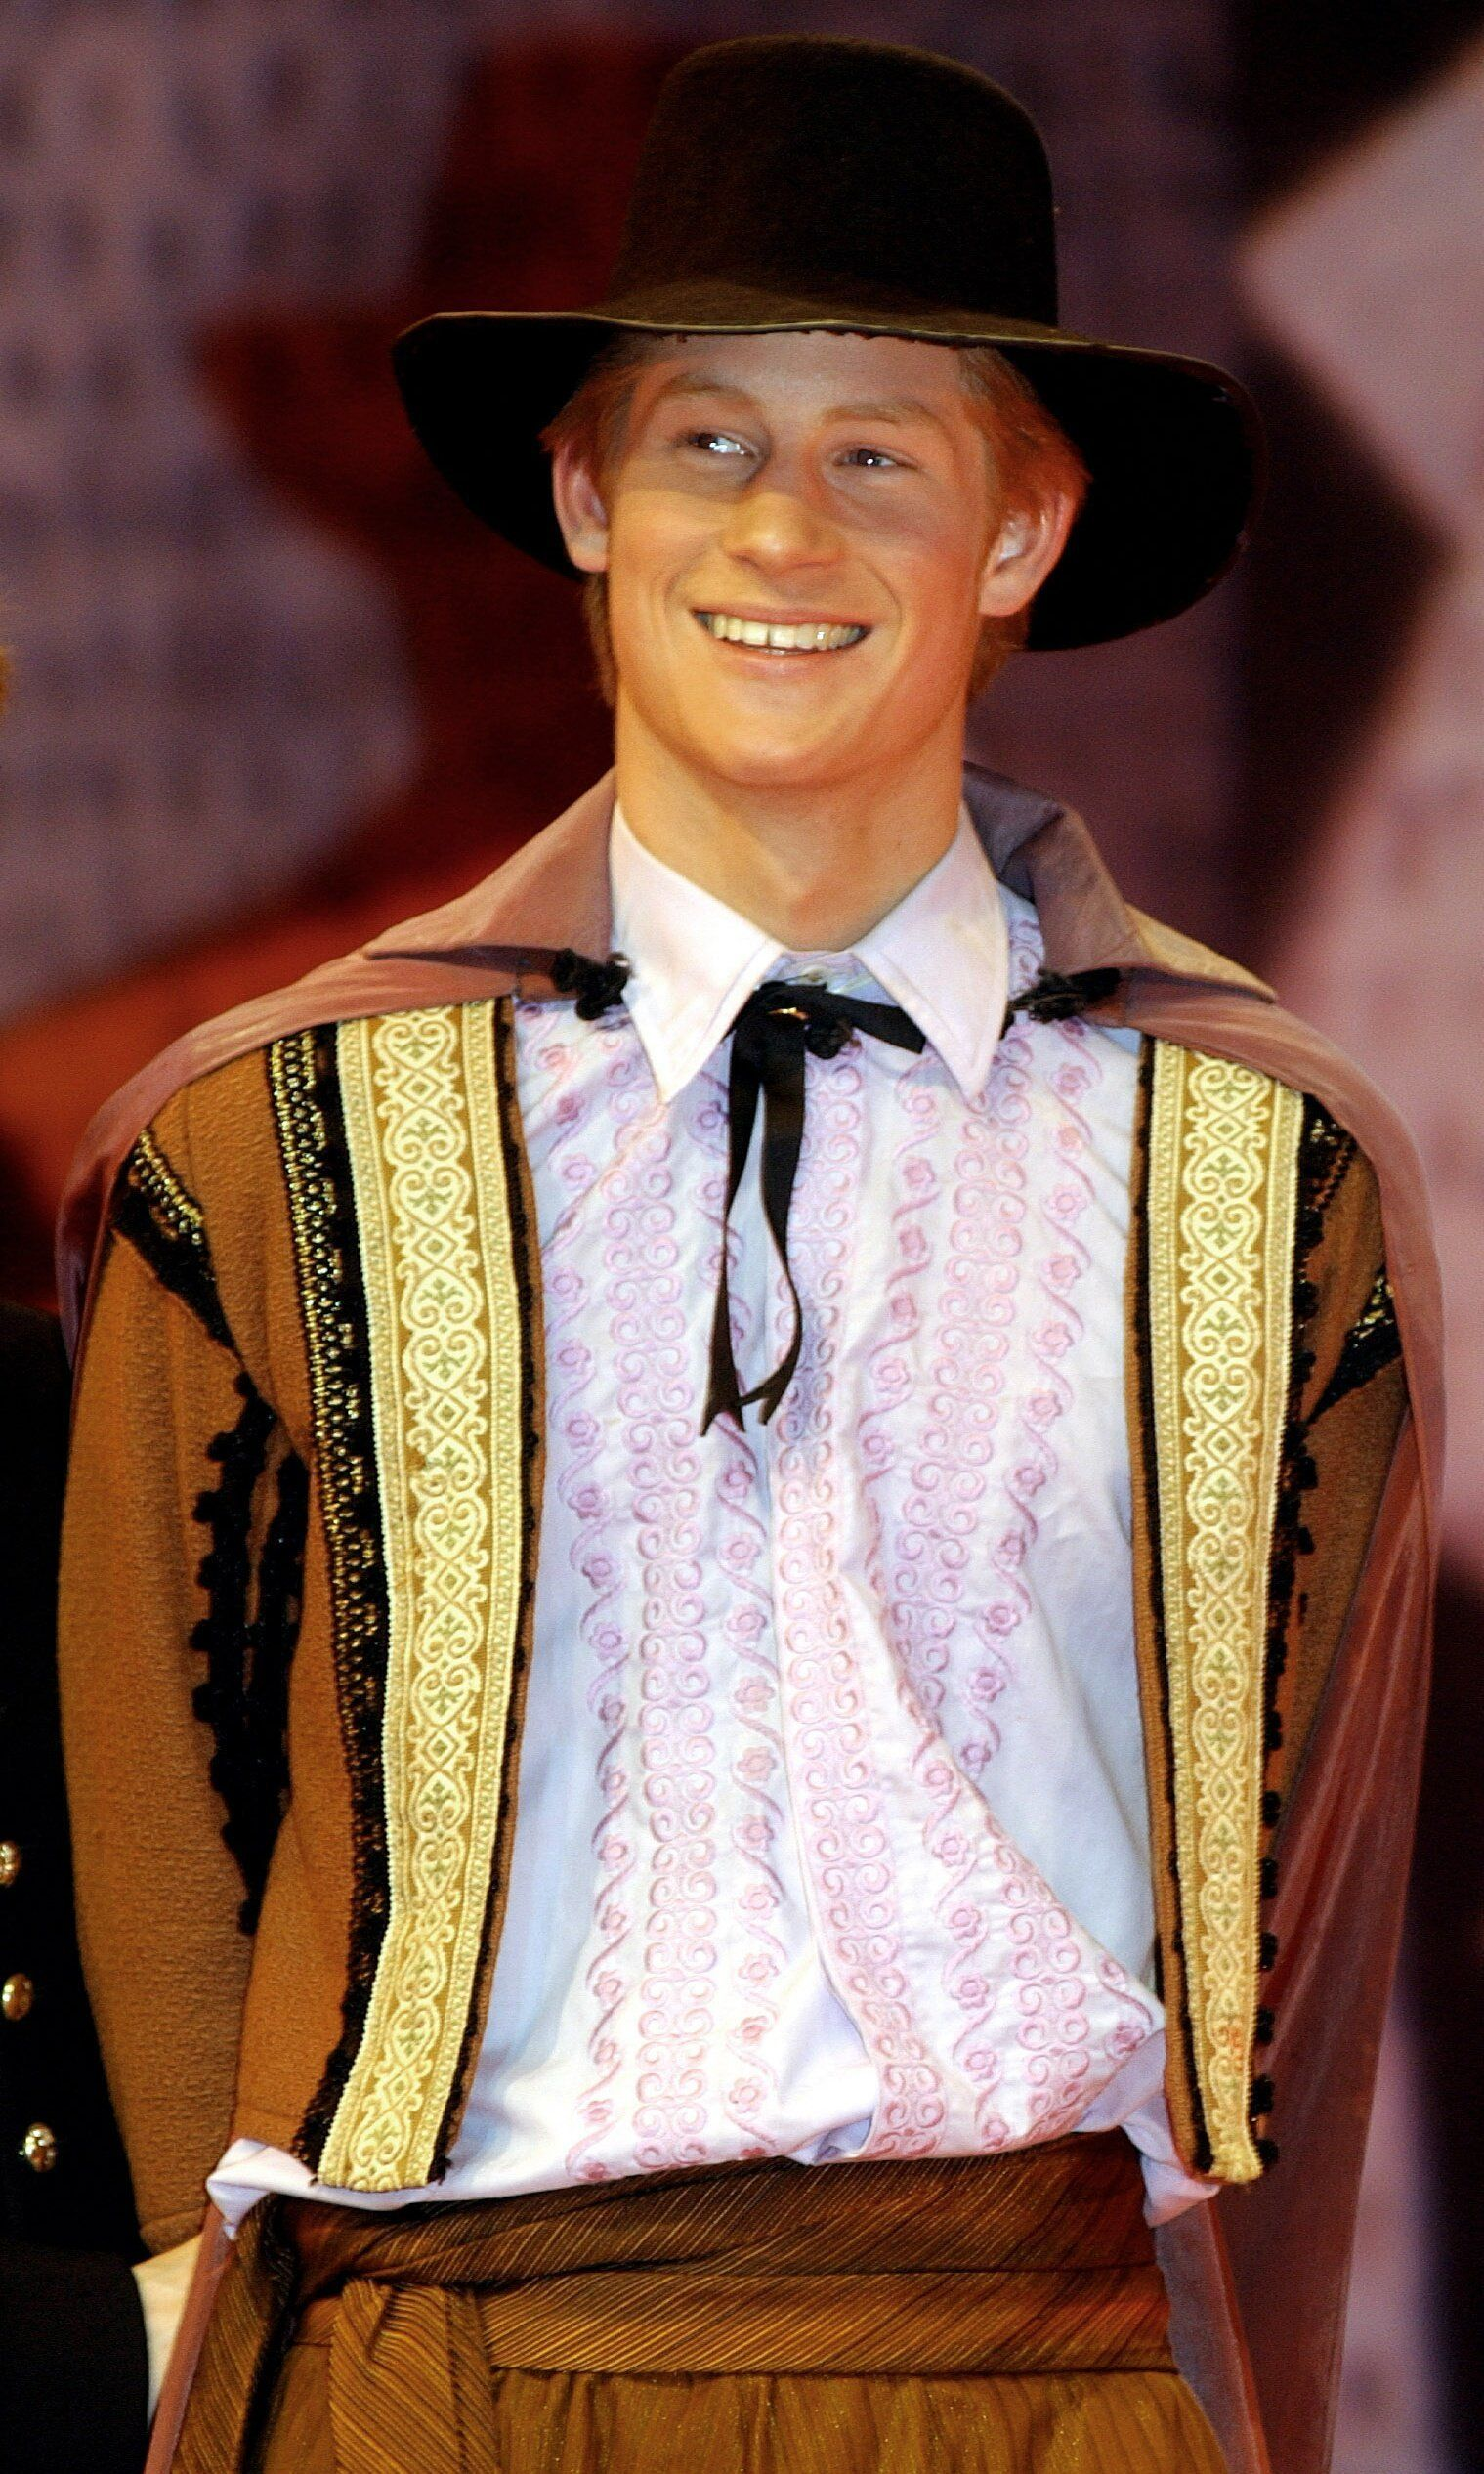 """Prince Harry acts in a masked ball scene in a production of """"Much Ado About Nothing"""" at Eton College in March 2003."""